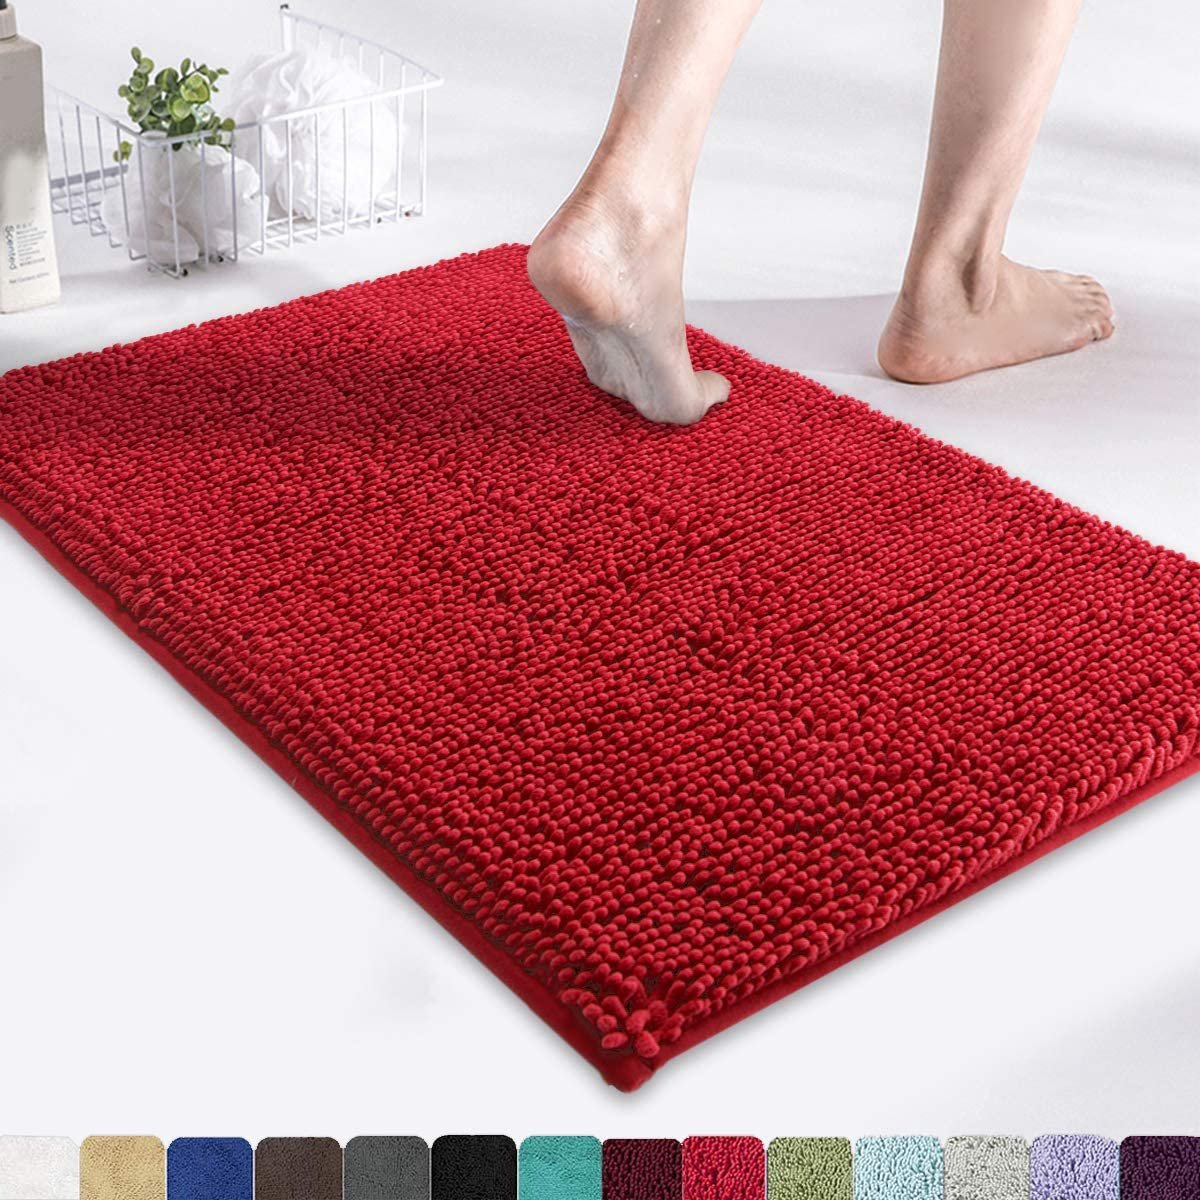 "MAYSHINE Chenille Bath Mat for Bathroom Rugs 24"" x17"", Extra"